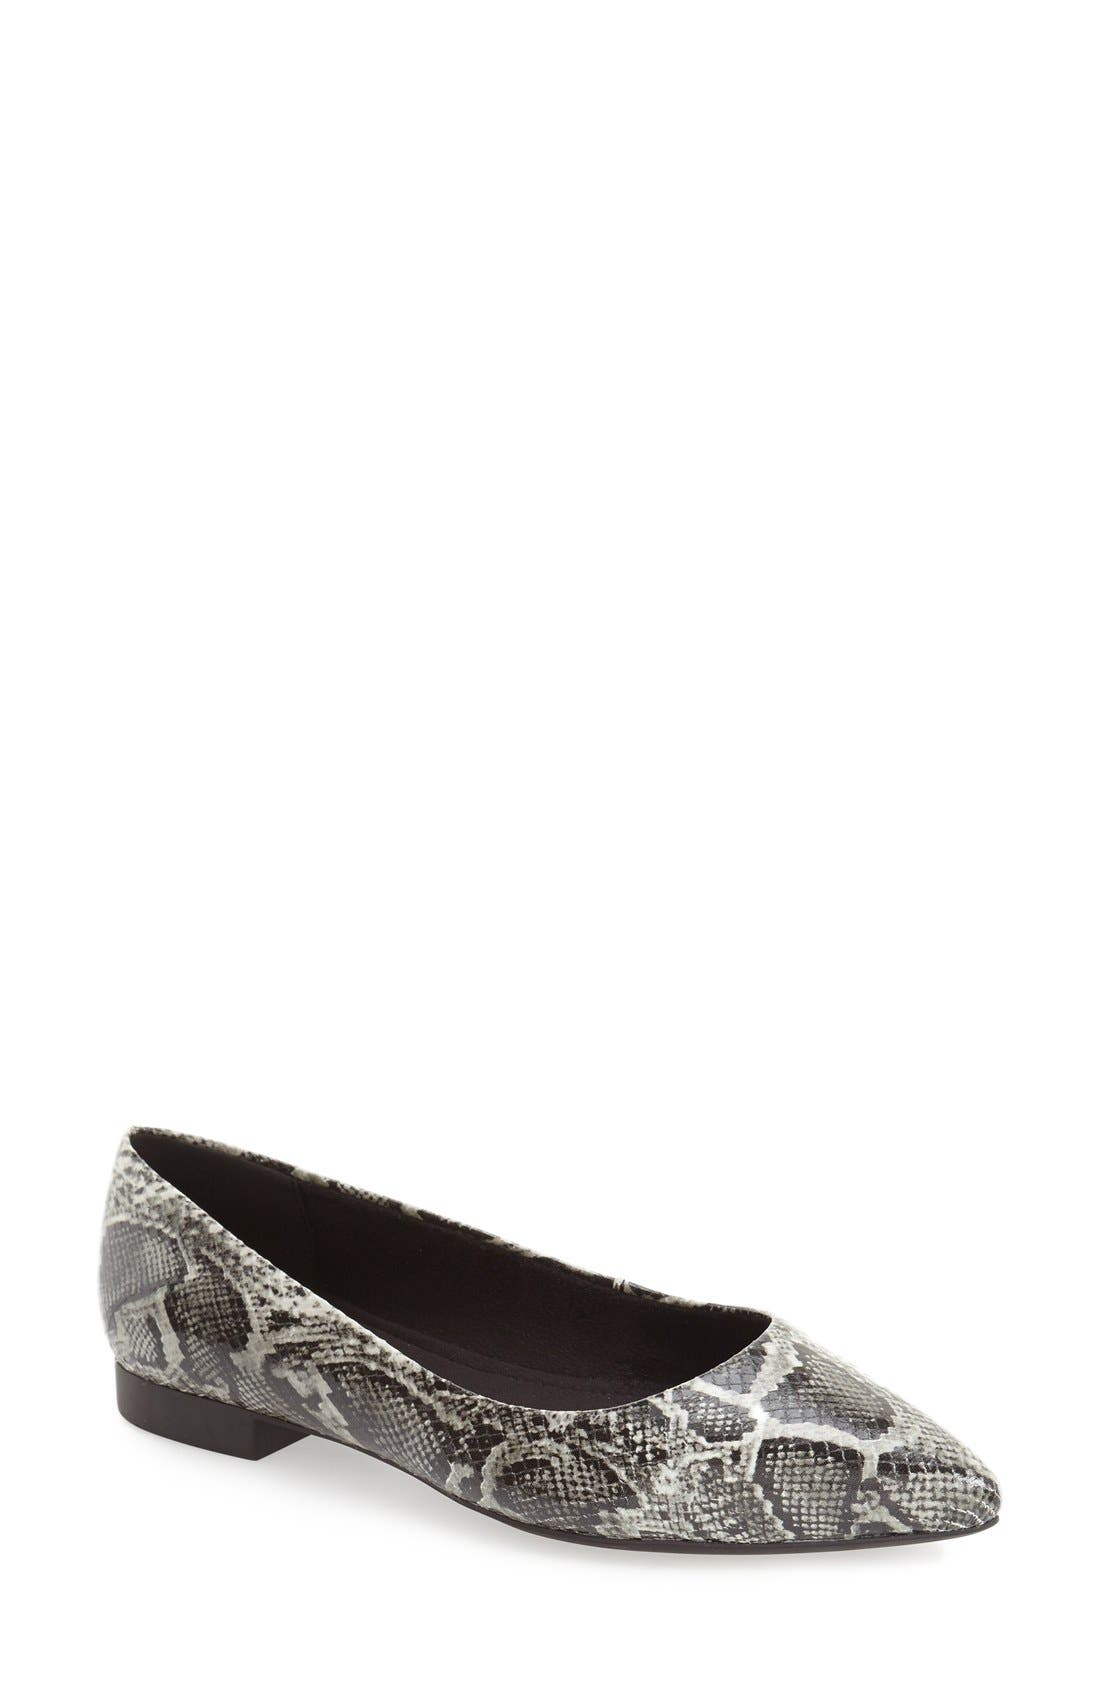 'Vivien' Pointy Toe Flat,                         Main,                         color, Black/ White Snake Print